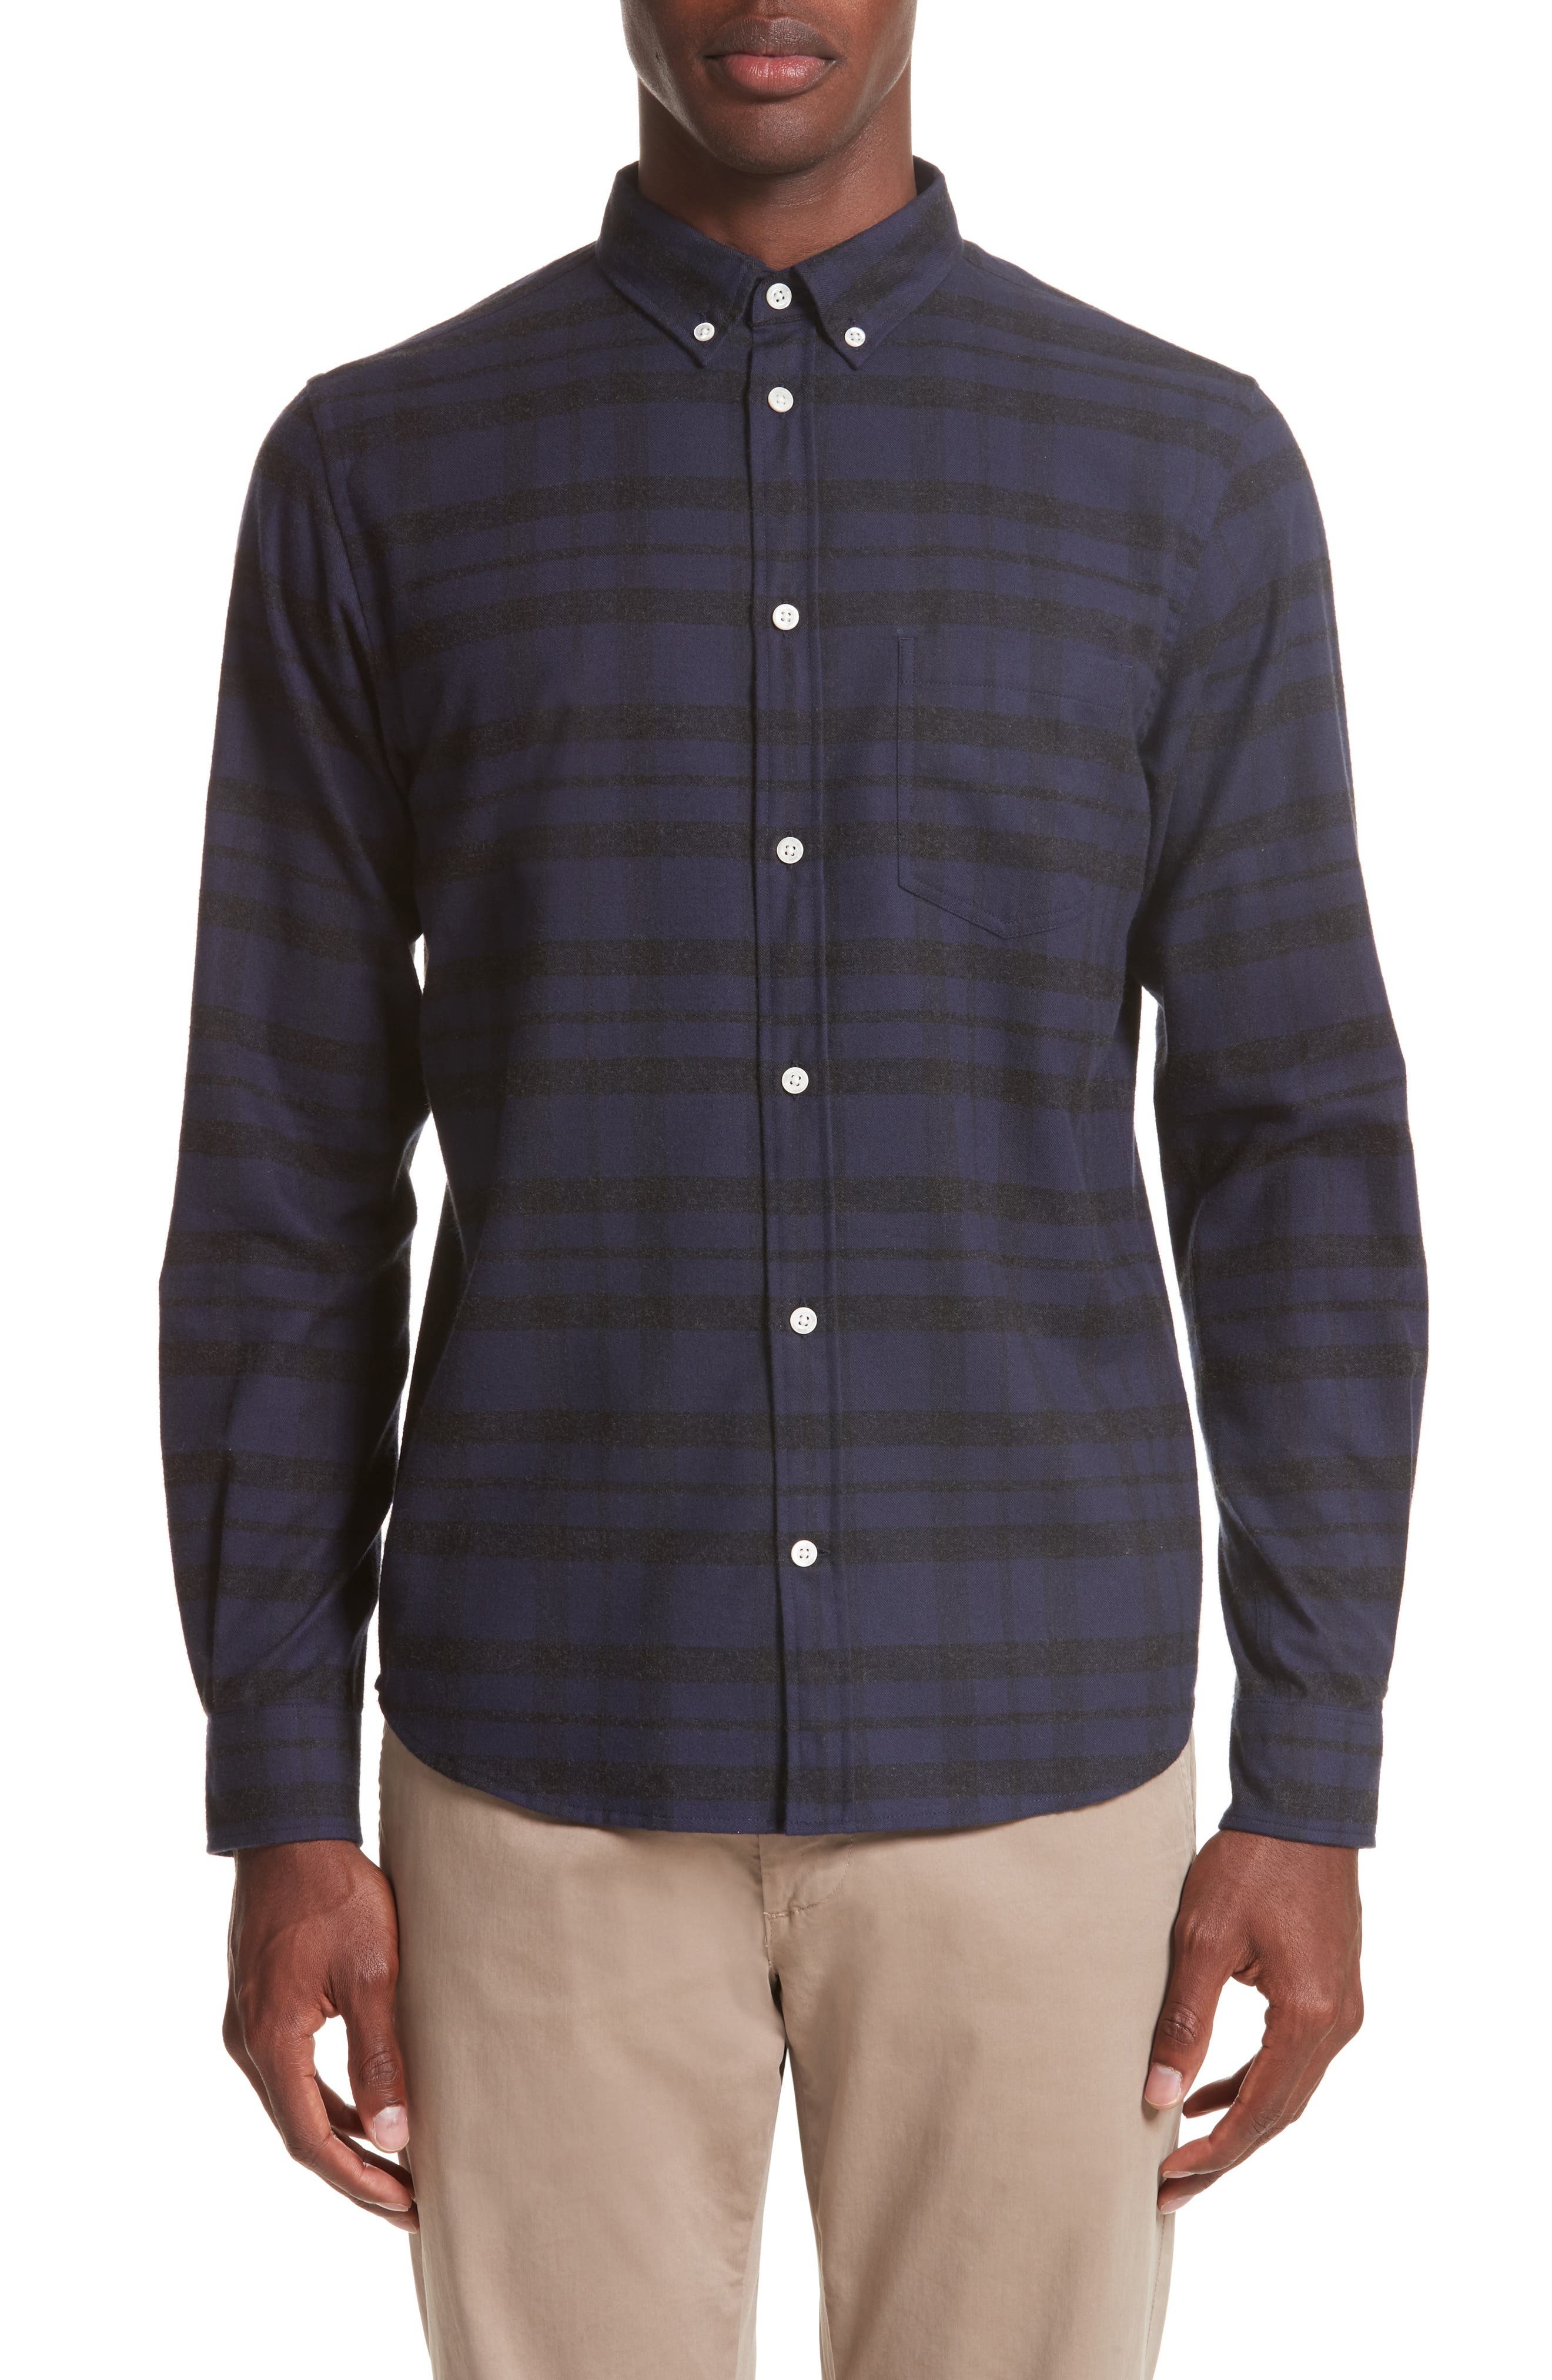 Anton Check Shirt,                             Main thumbnail 1, color,                             010